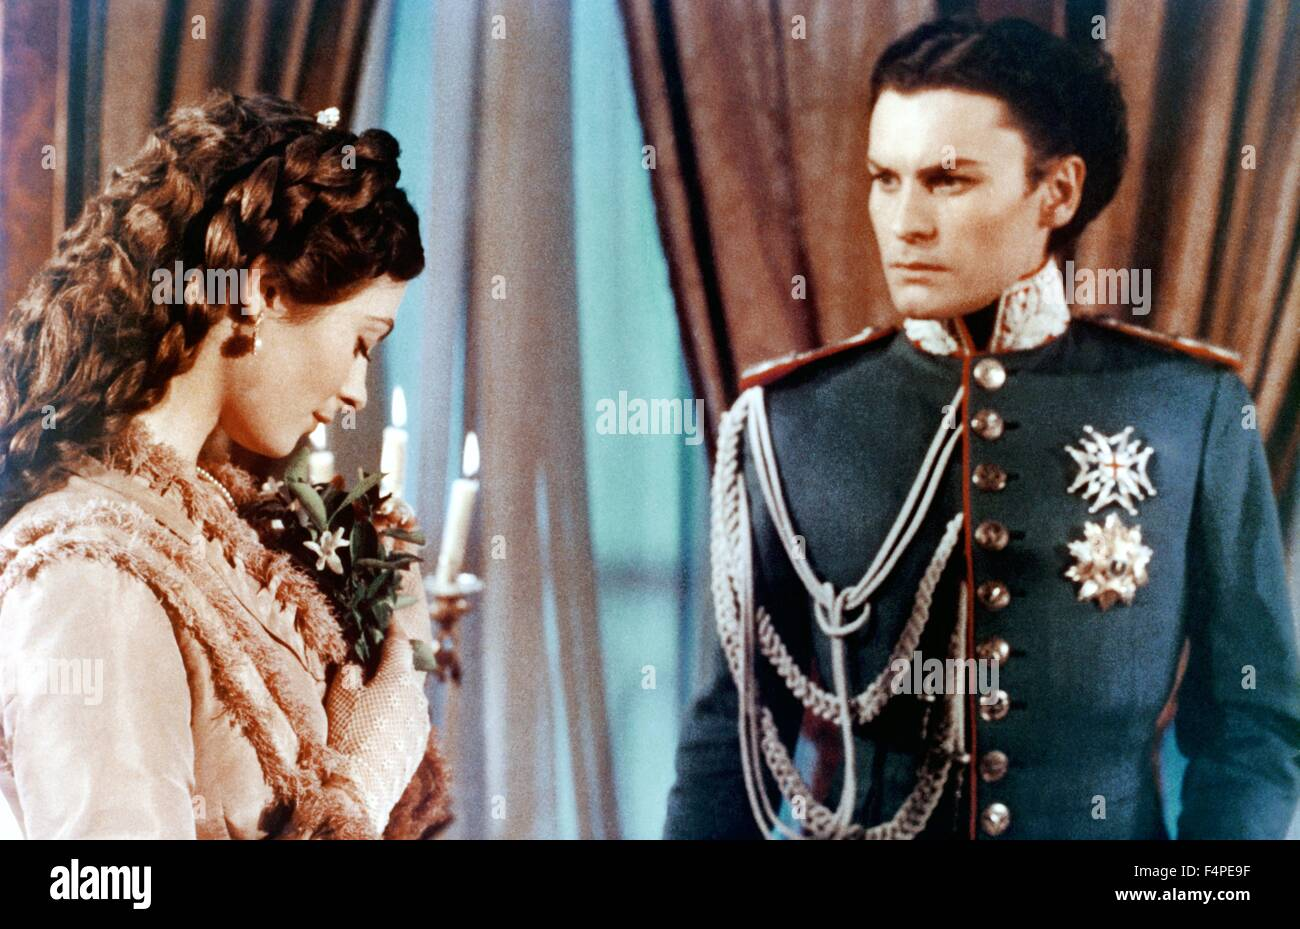 Sonia Petrova and Helmut Berger / Ludwig : The Mad King of Bavaria / 1972 directed by Luchino Visconti - Stock Image